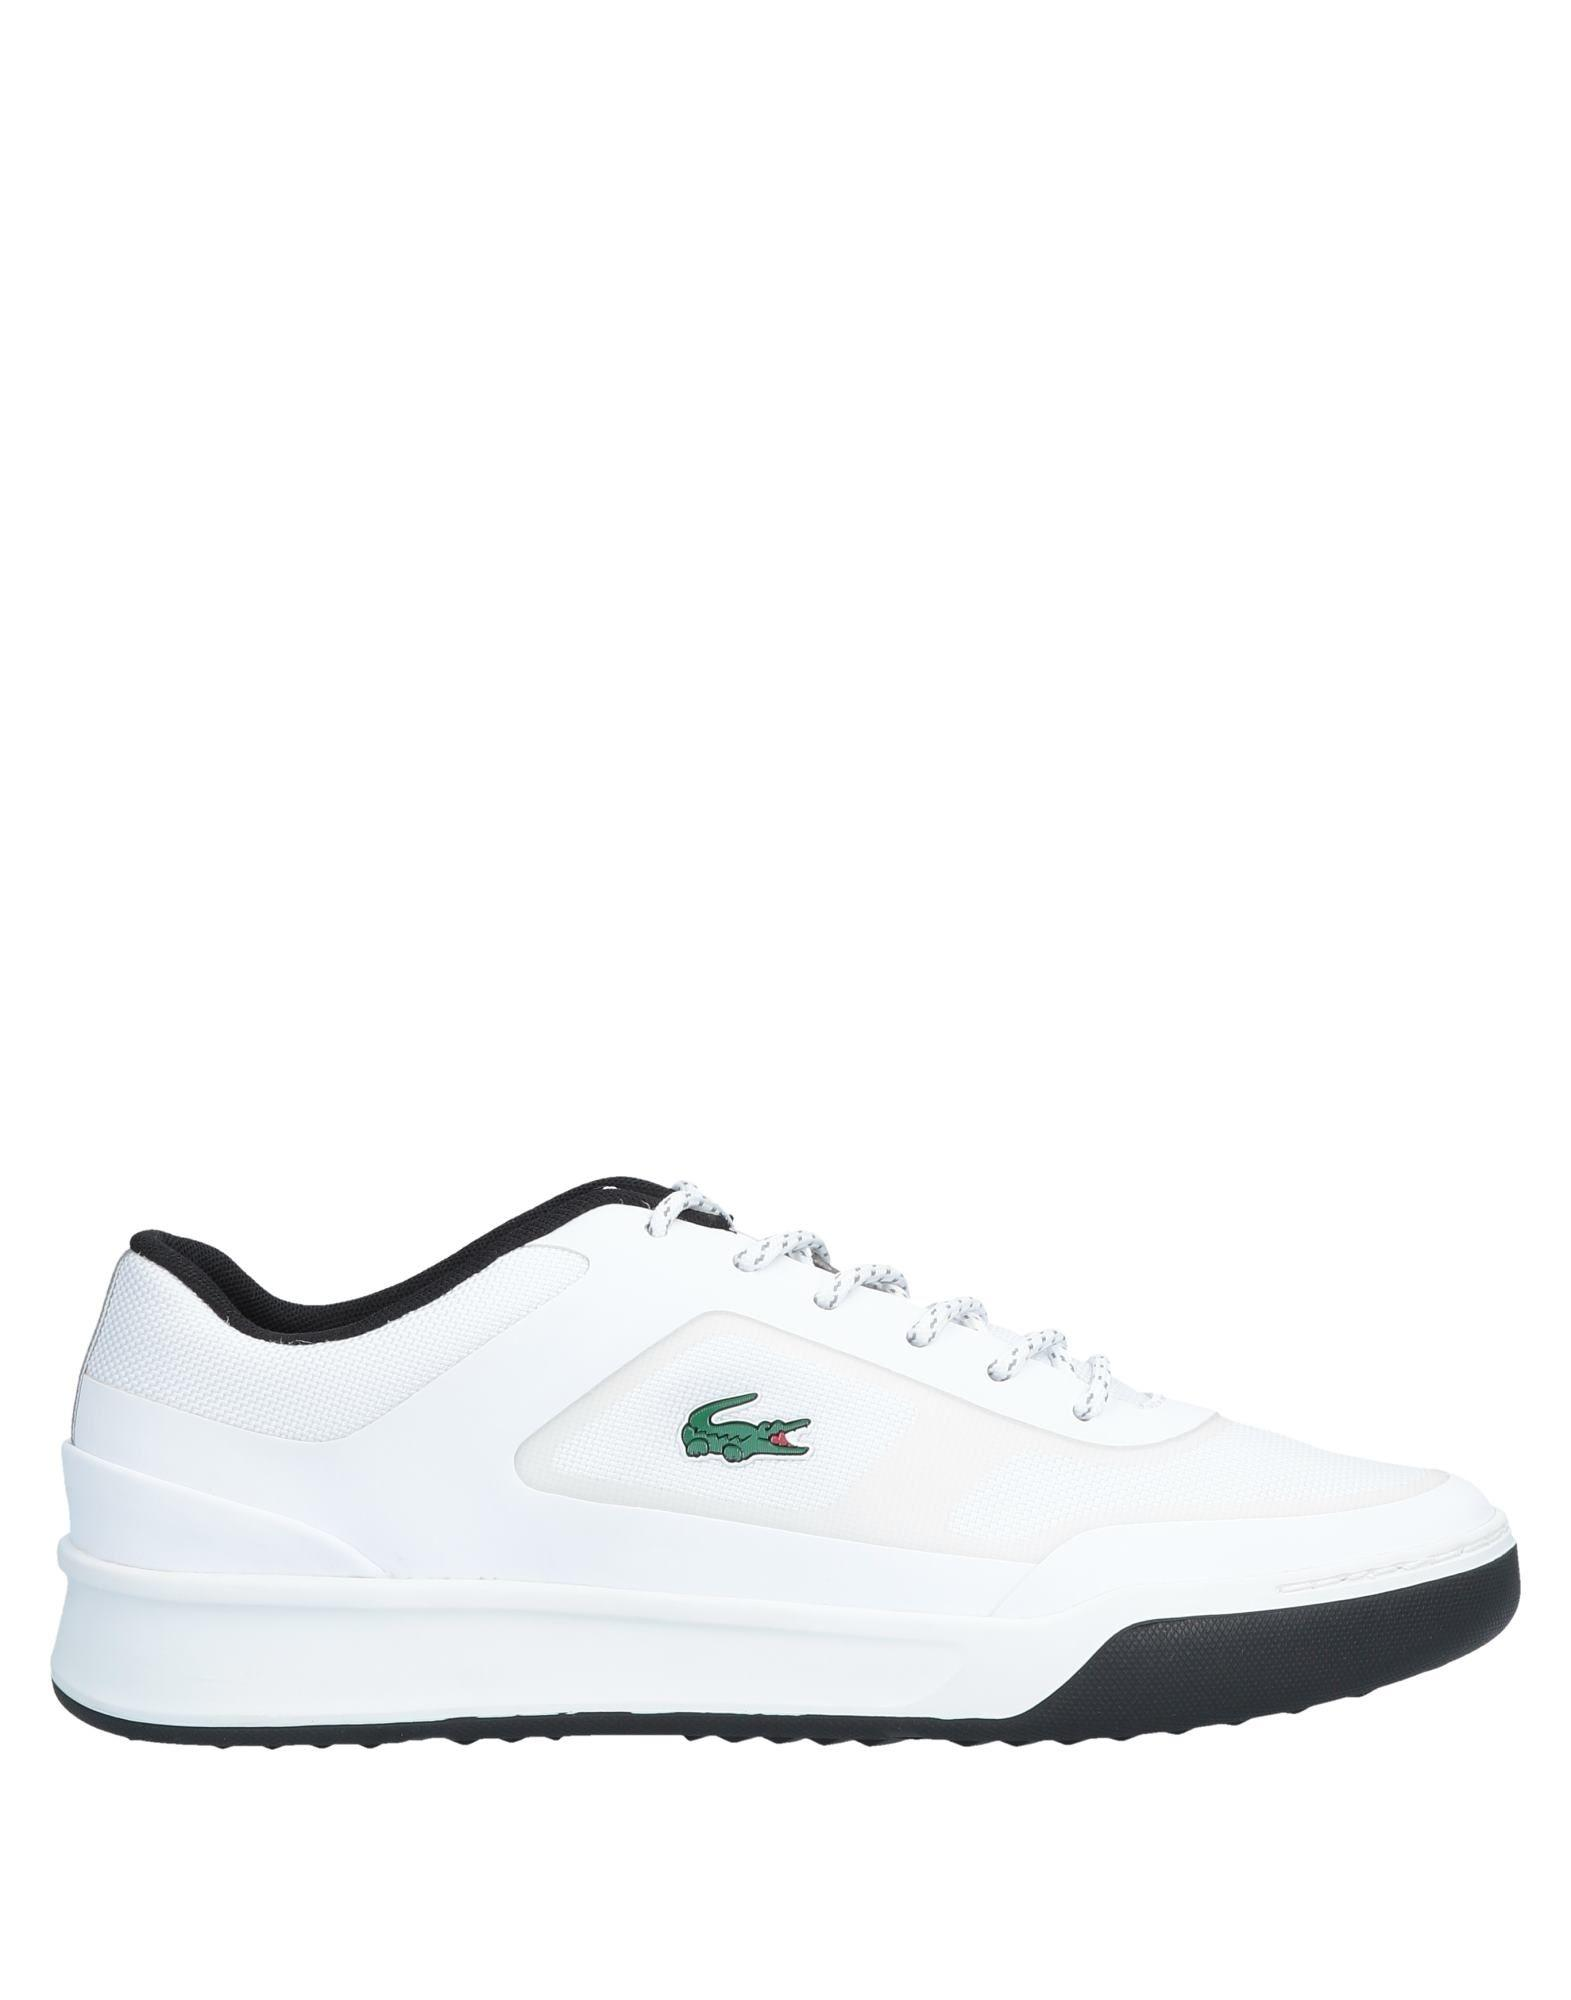 5e74382b1 Lyst - Lacoste Low-tops   Sneakers in White for Men